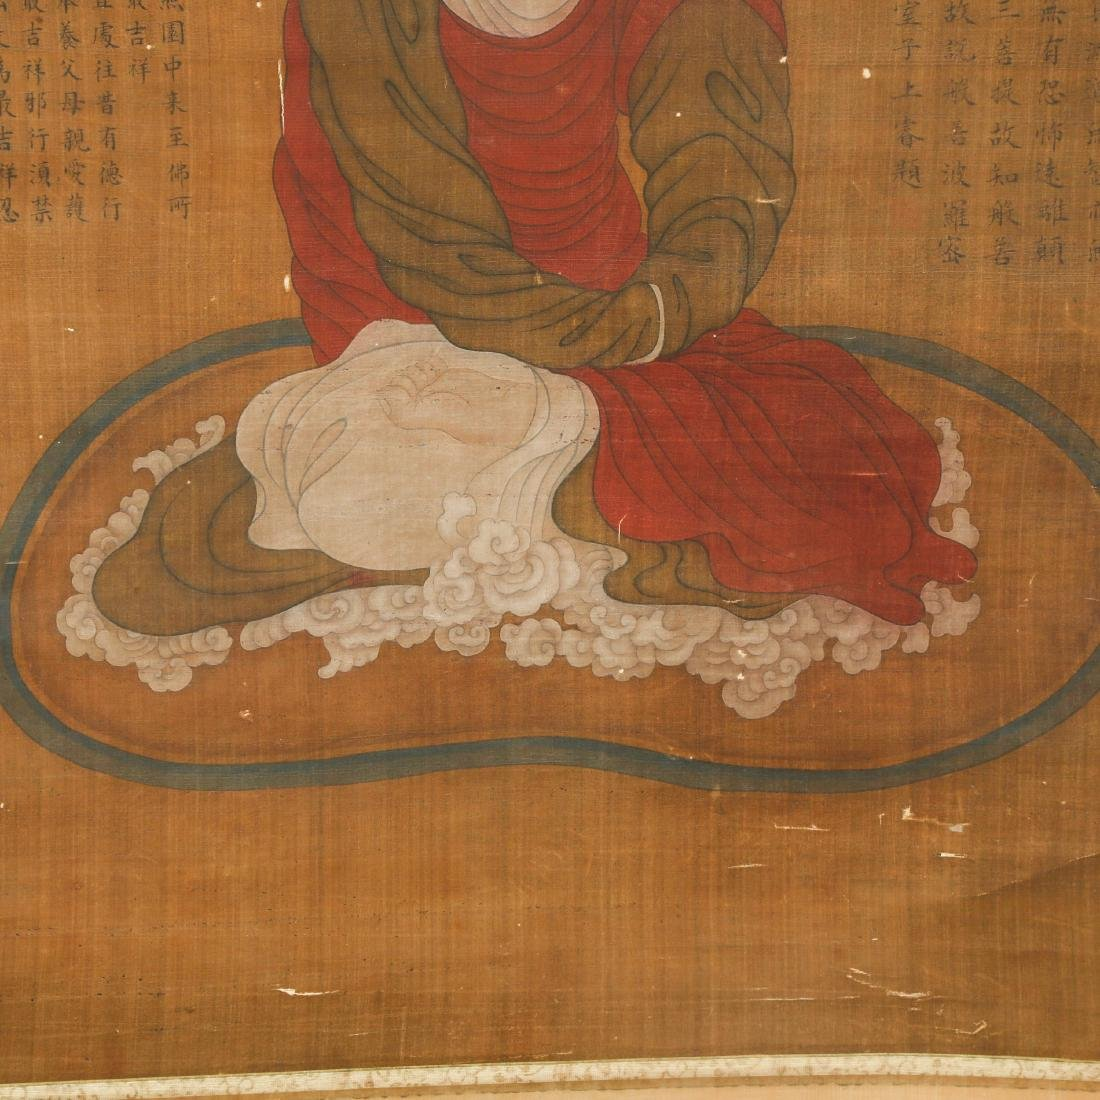 CHINESE SCROLL PAINTING OF LOHAN - 10